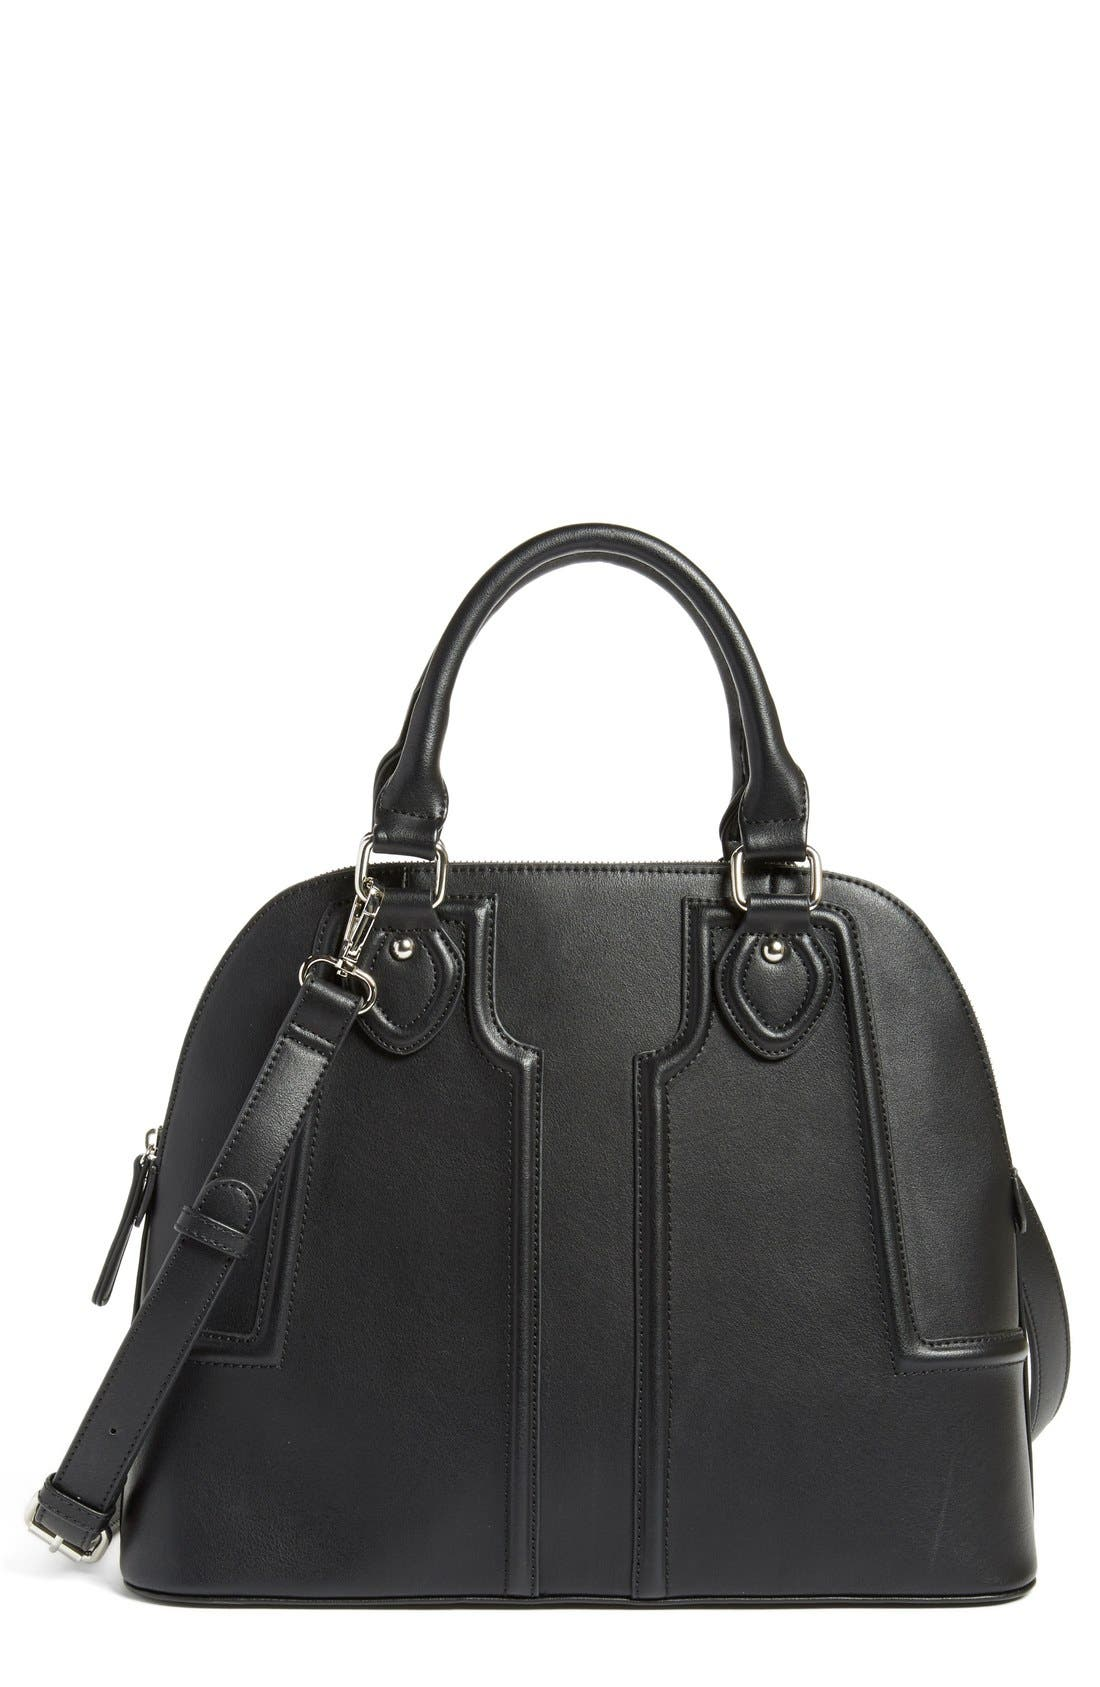 Main Image - Sole Society 'Marlow' Structured Dome Satchel